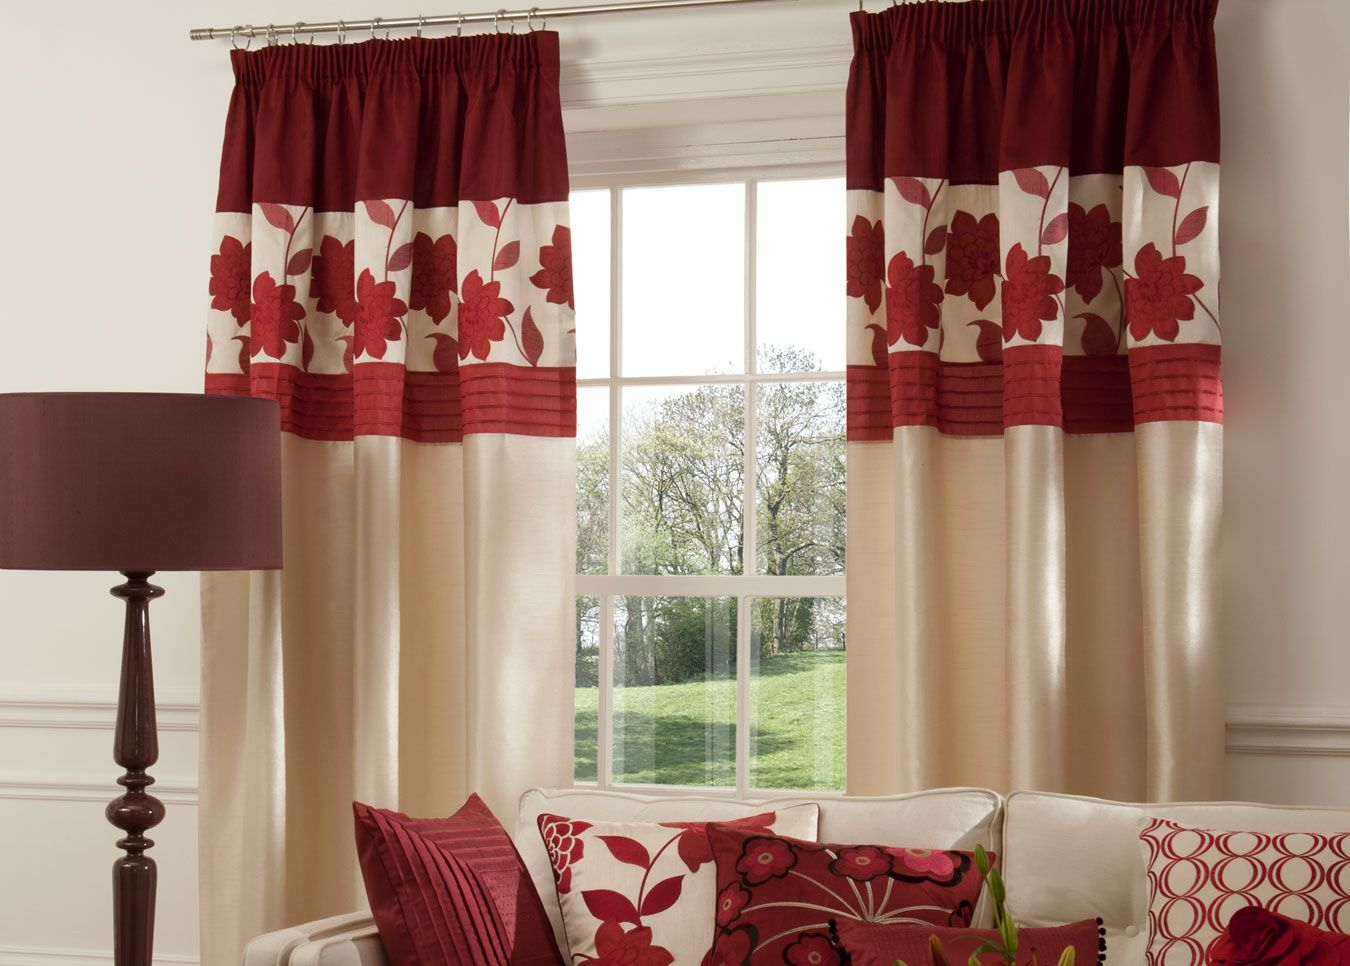 Maroon Curtains For Living Room  Window Treatments  Pinterest Enchanting Designers Curtains For Living Room Design Inspiration